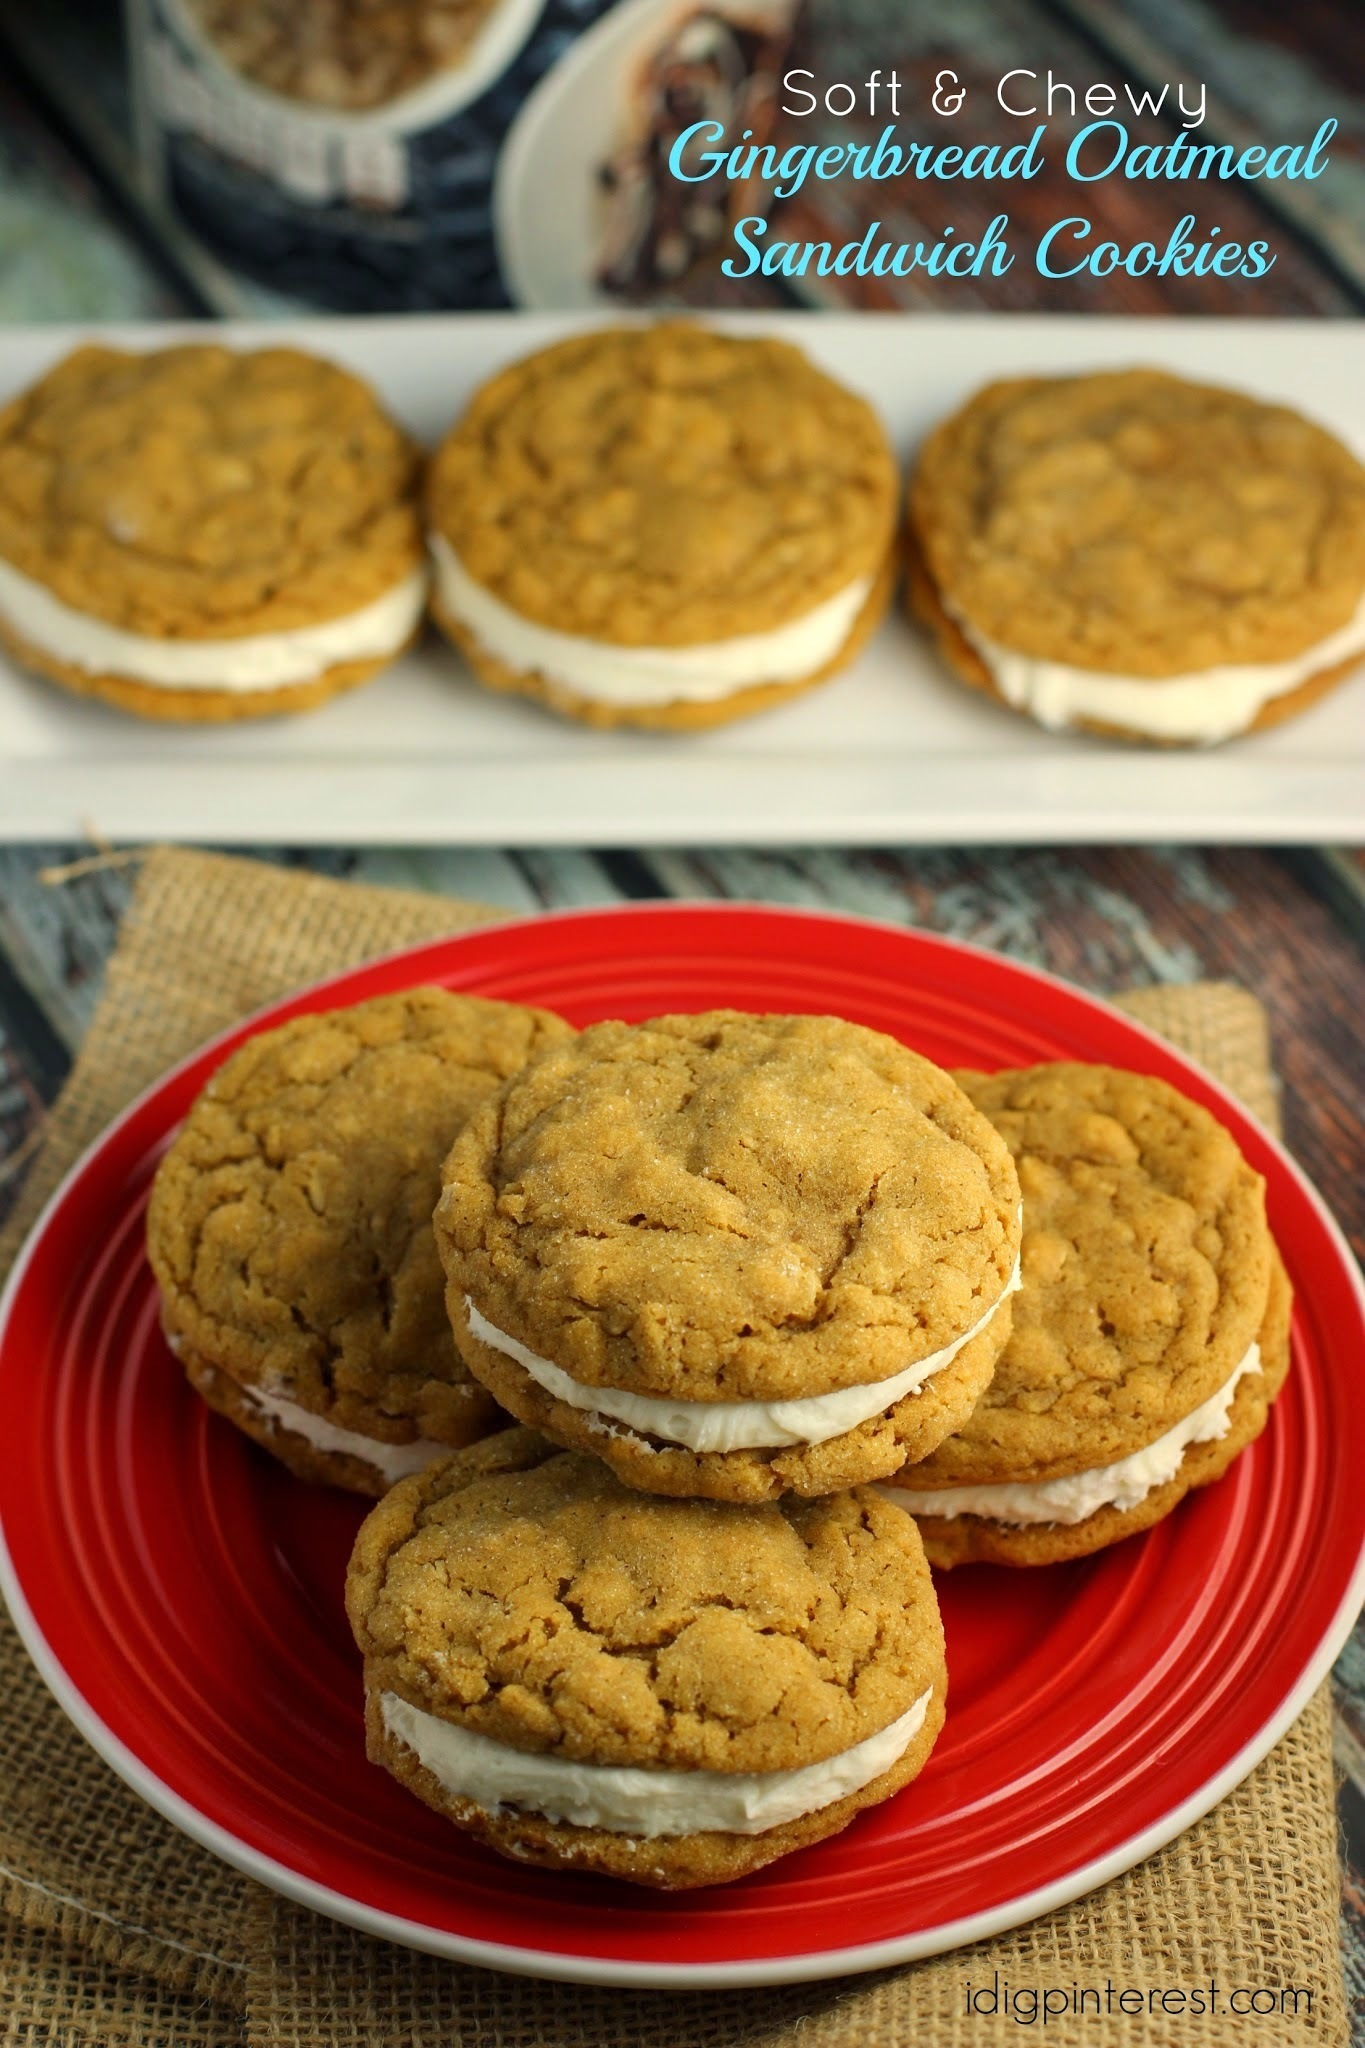 Soft & Chewy Gingerbread Oatmeal Sandwich Cookie Recipe